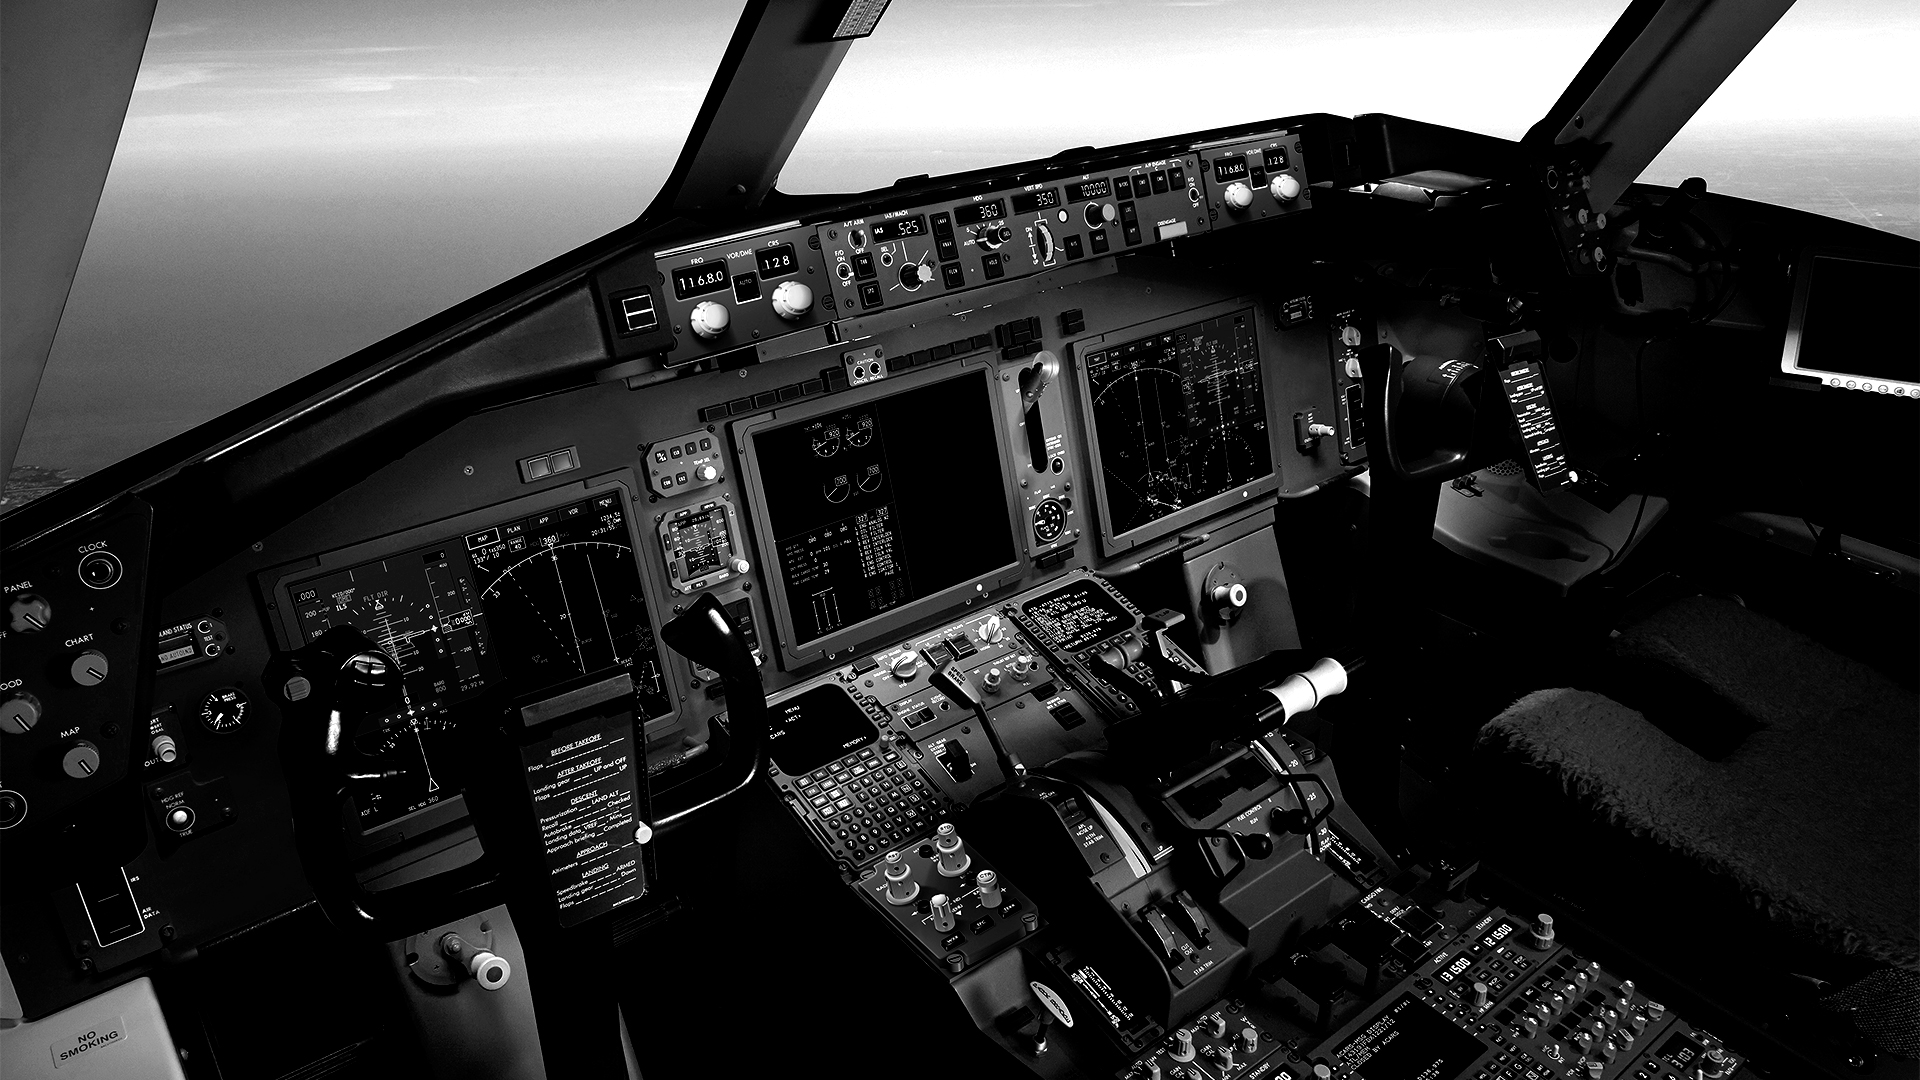 767 Large Display System Pilot angle